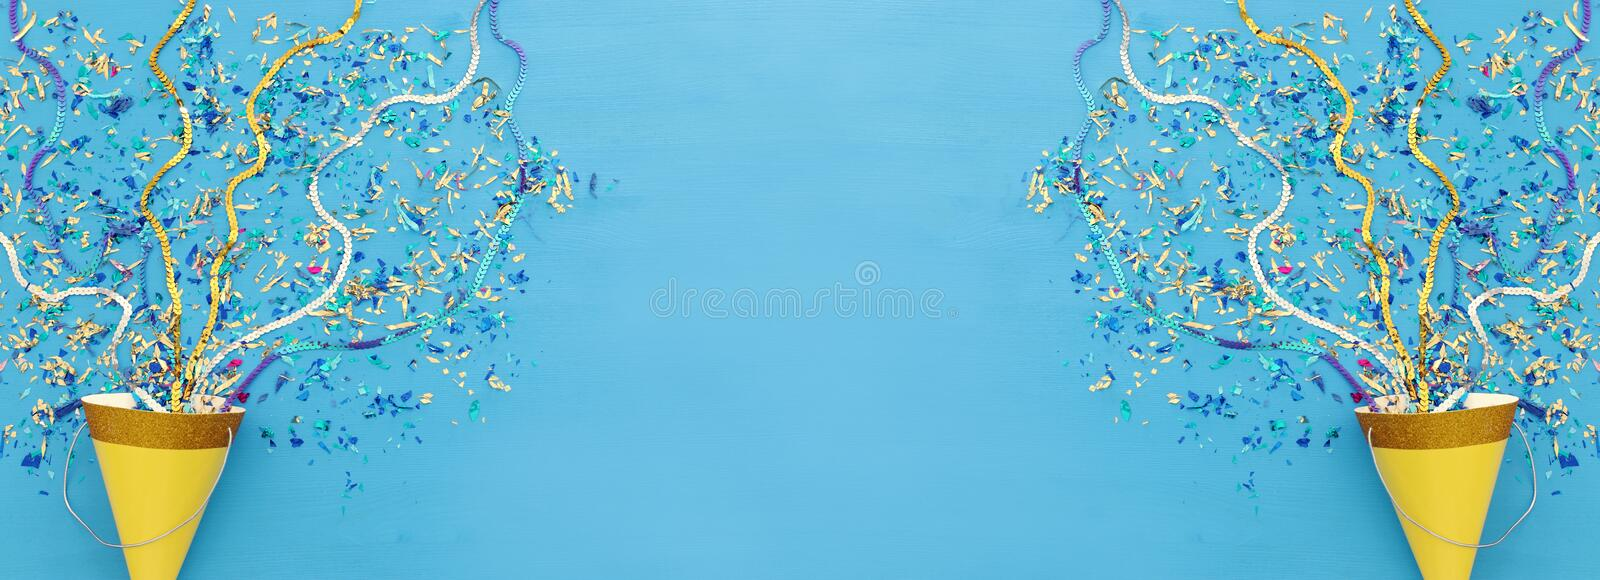 Party colorful confetti and clown hat over blue wooden background . Top view, flat lay. royalty free stock photo